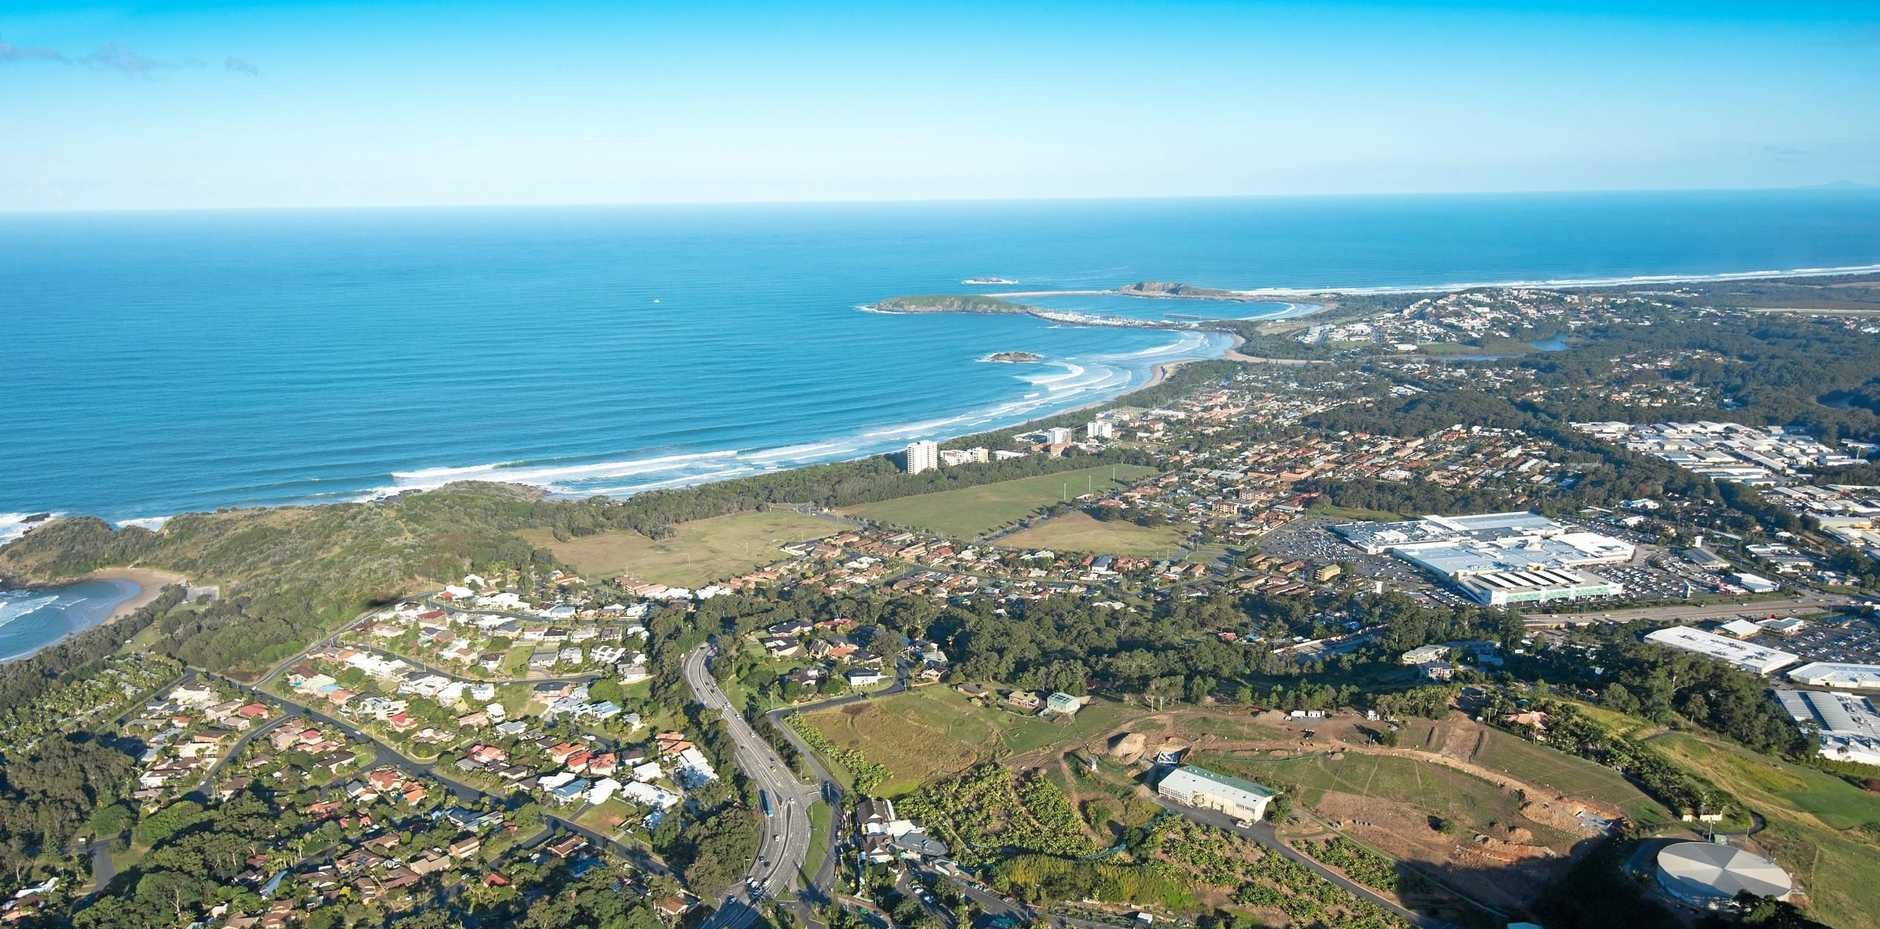 Coffs Harbour has been identified as one of NSW's key growth areas over the two decades.